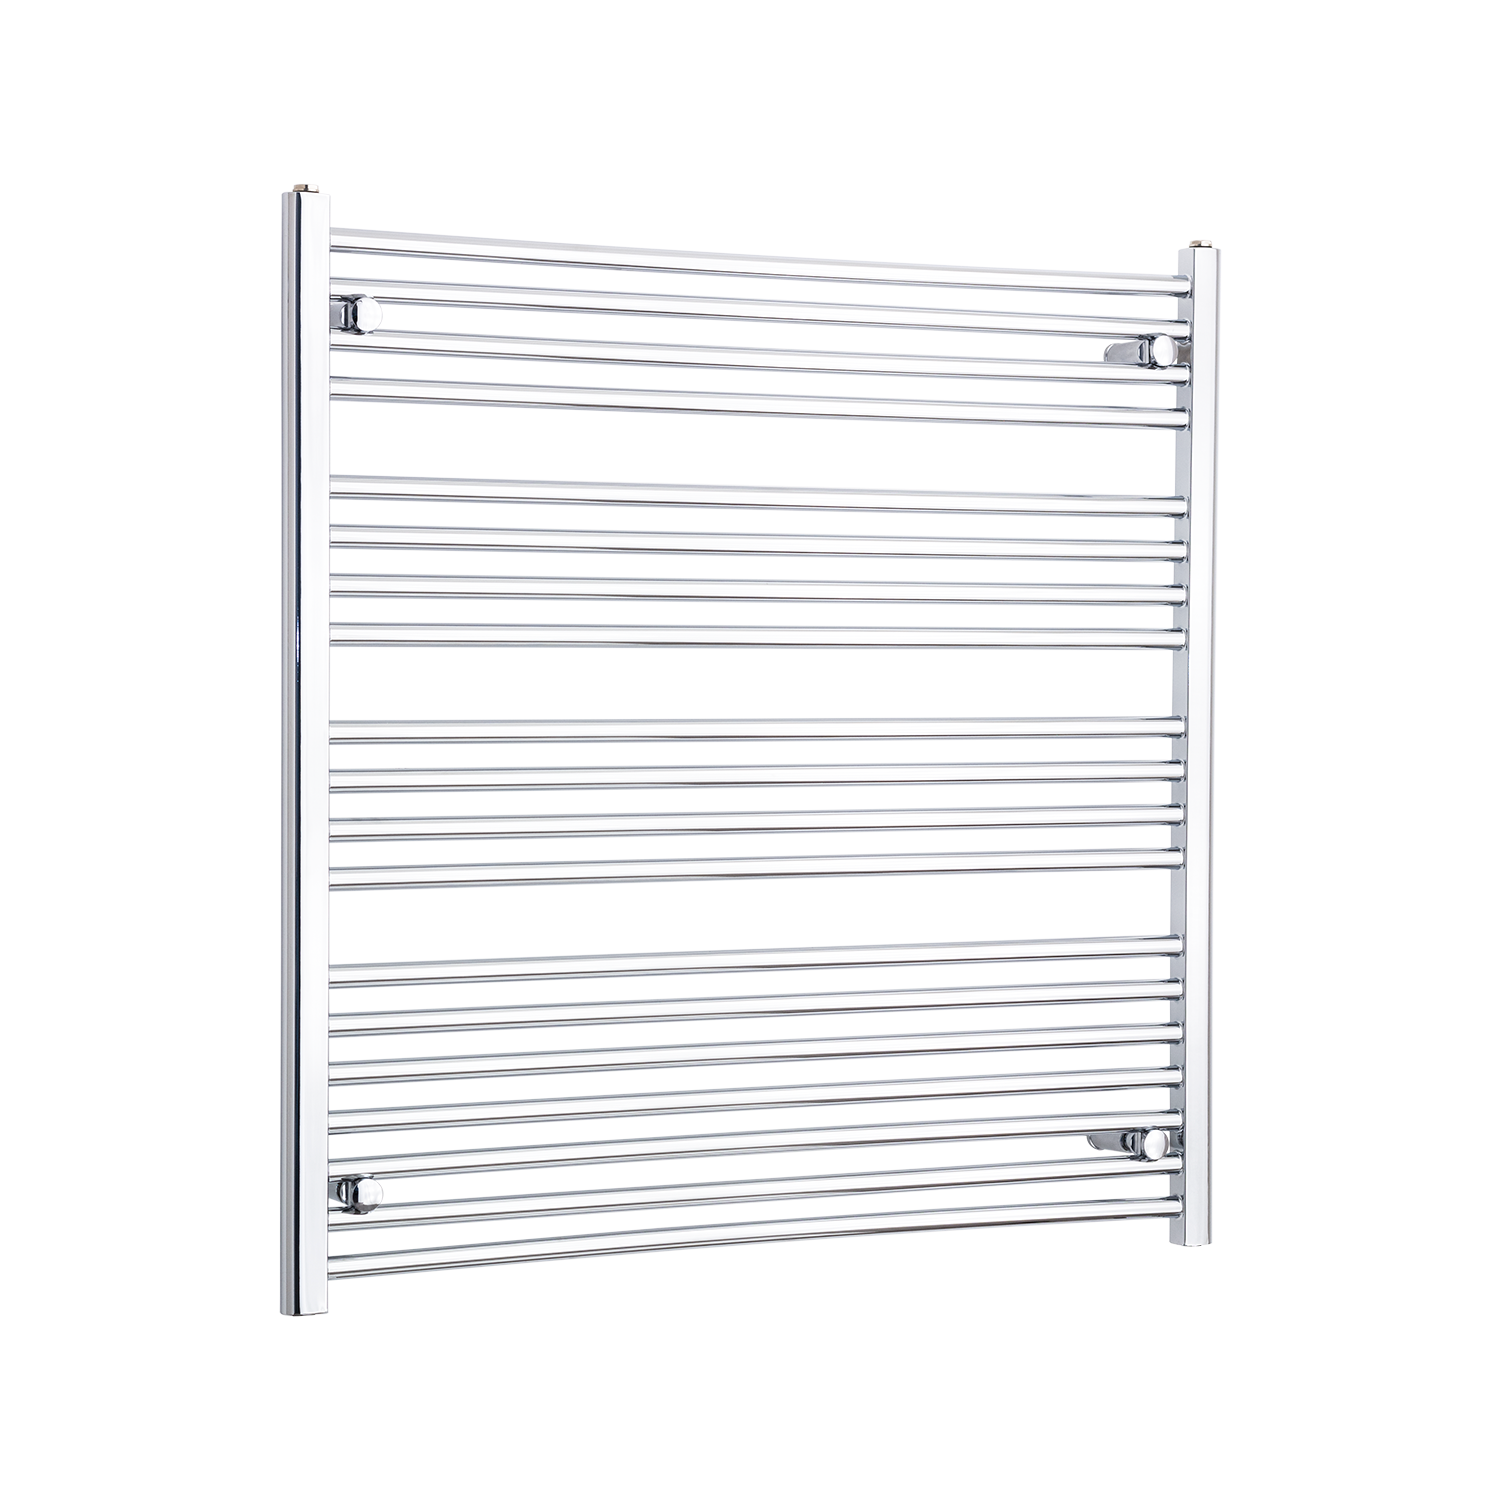 950mm Wide 1000mm High Chrome Towel Rail Radiator